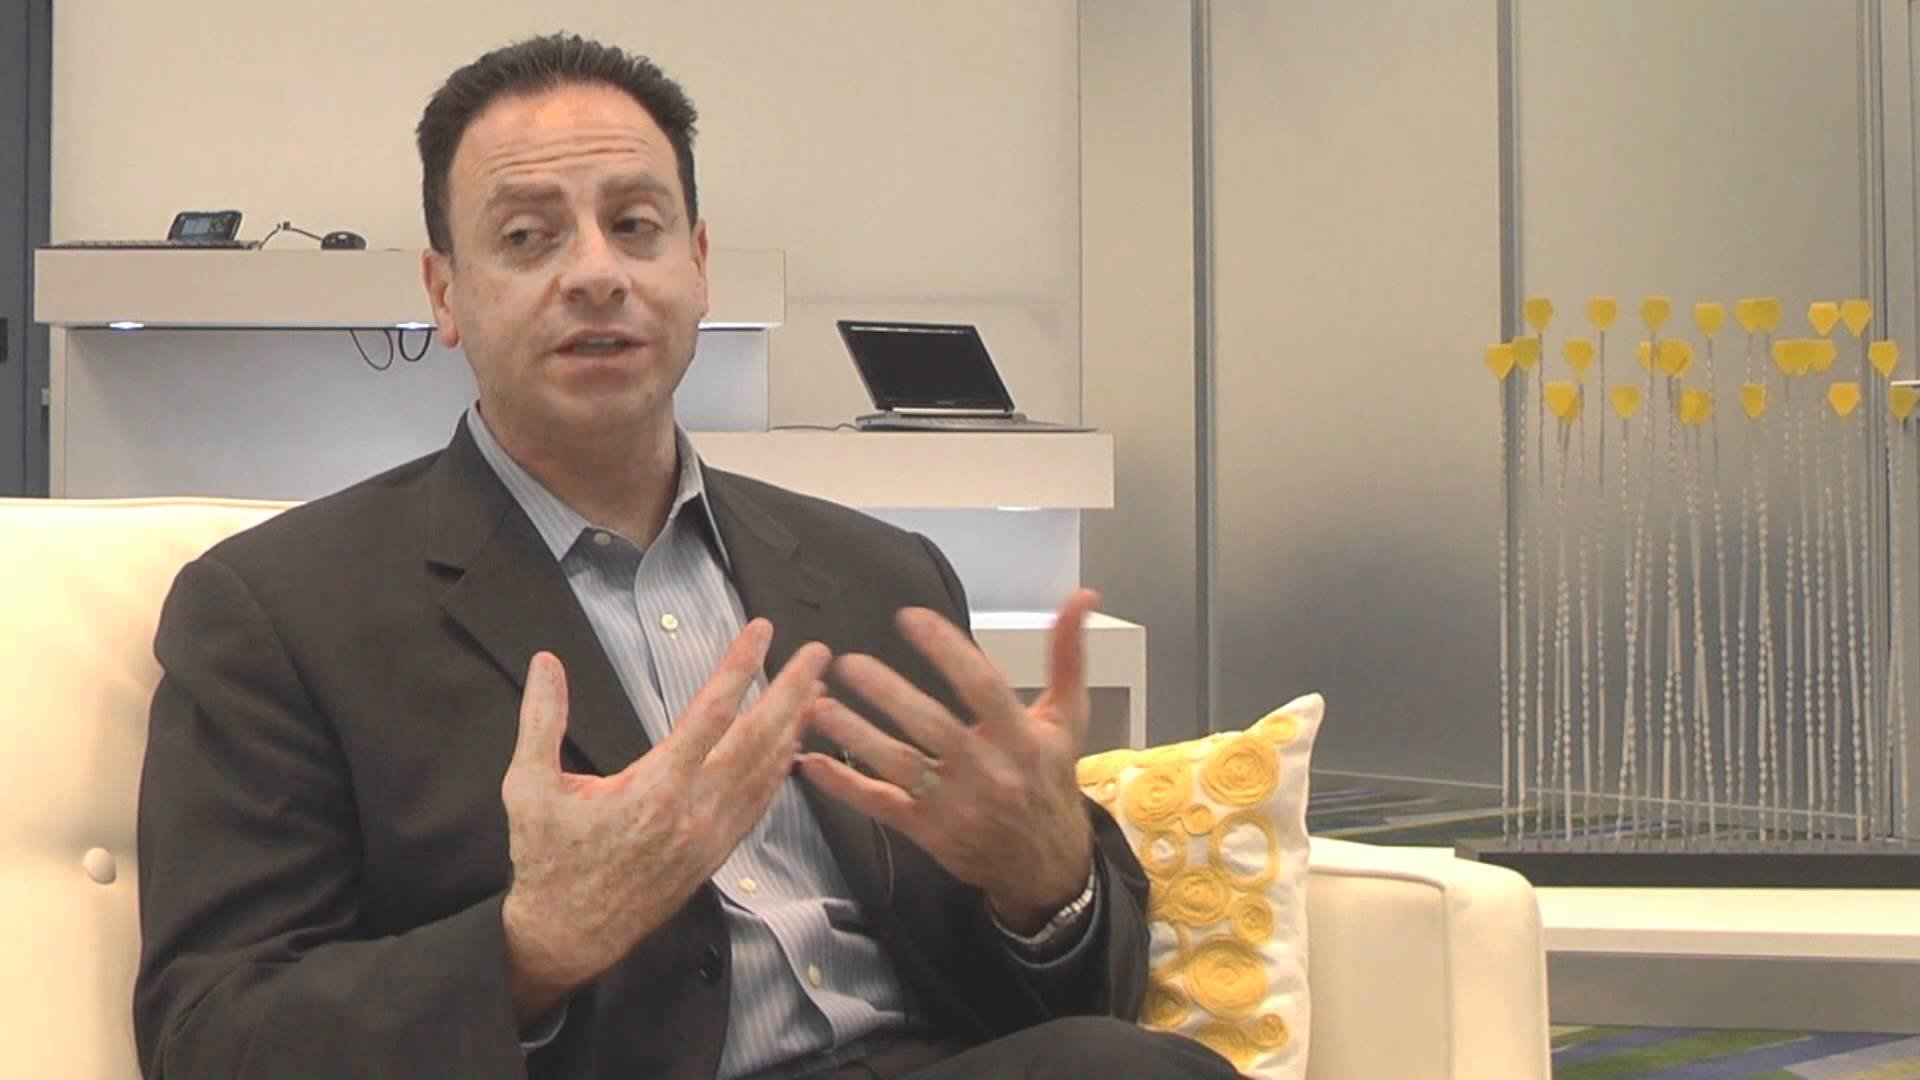 Sprint VP talks up LTE-Advanced, VoLTE and HD Voice in new video